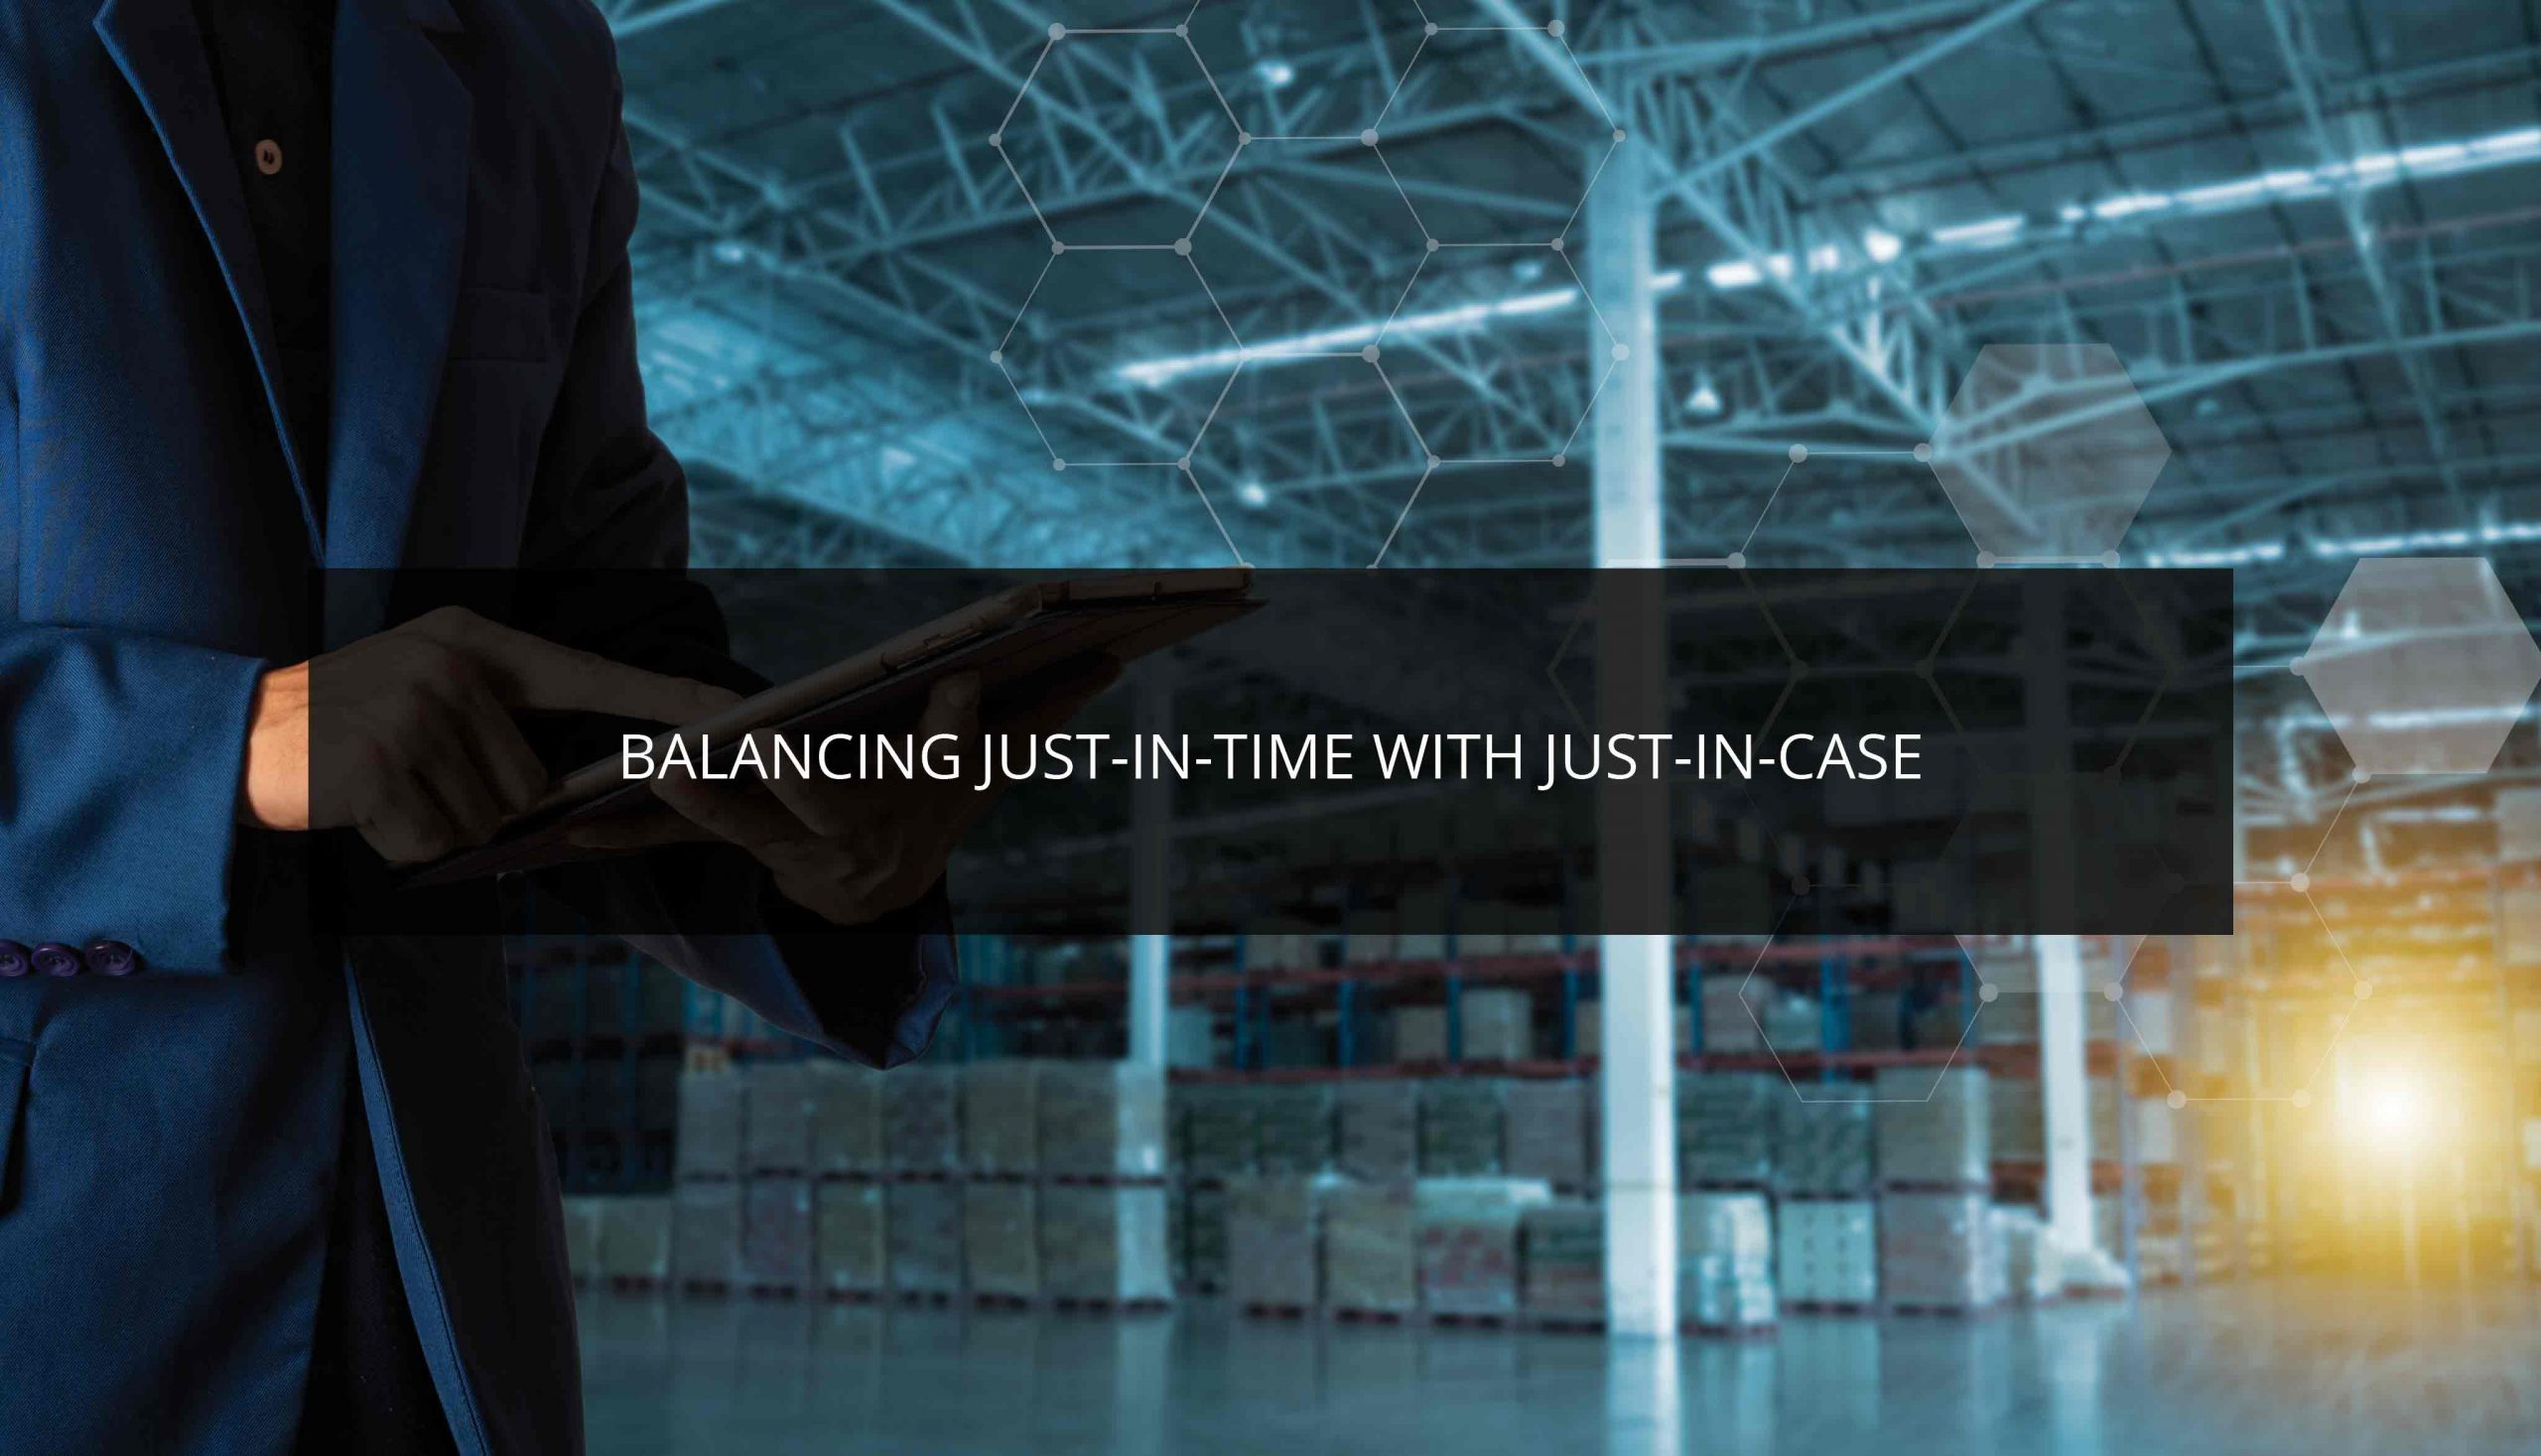 Balancing Just-in-Time with Just-in-Case